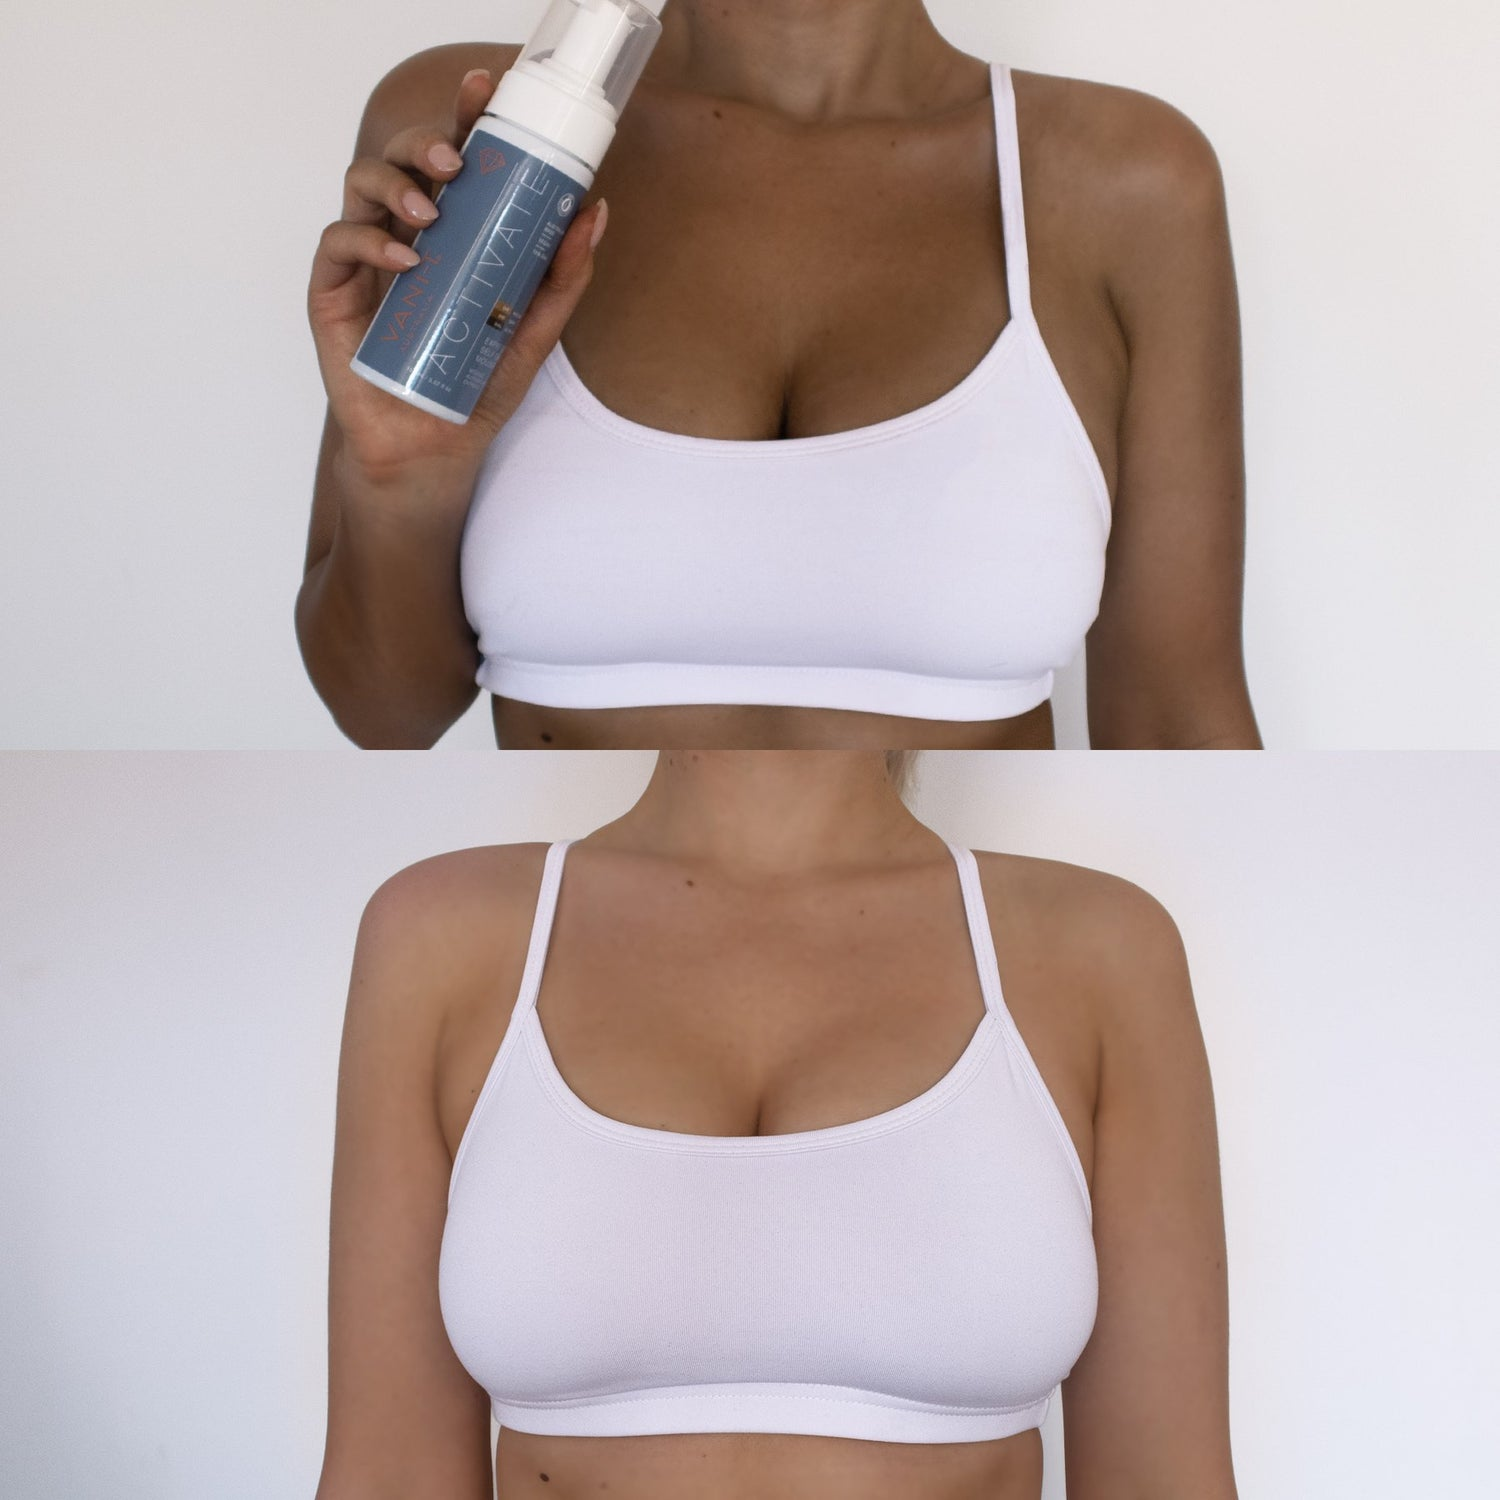 Image of Activate Express Self Tan Mousse